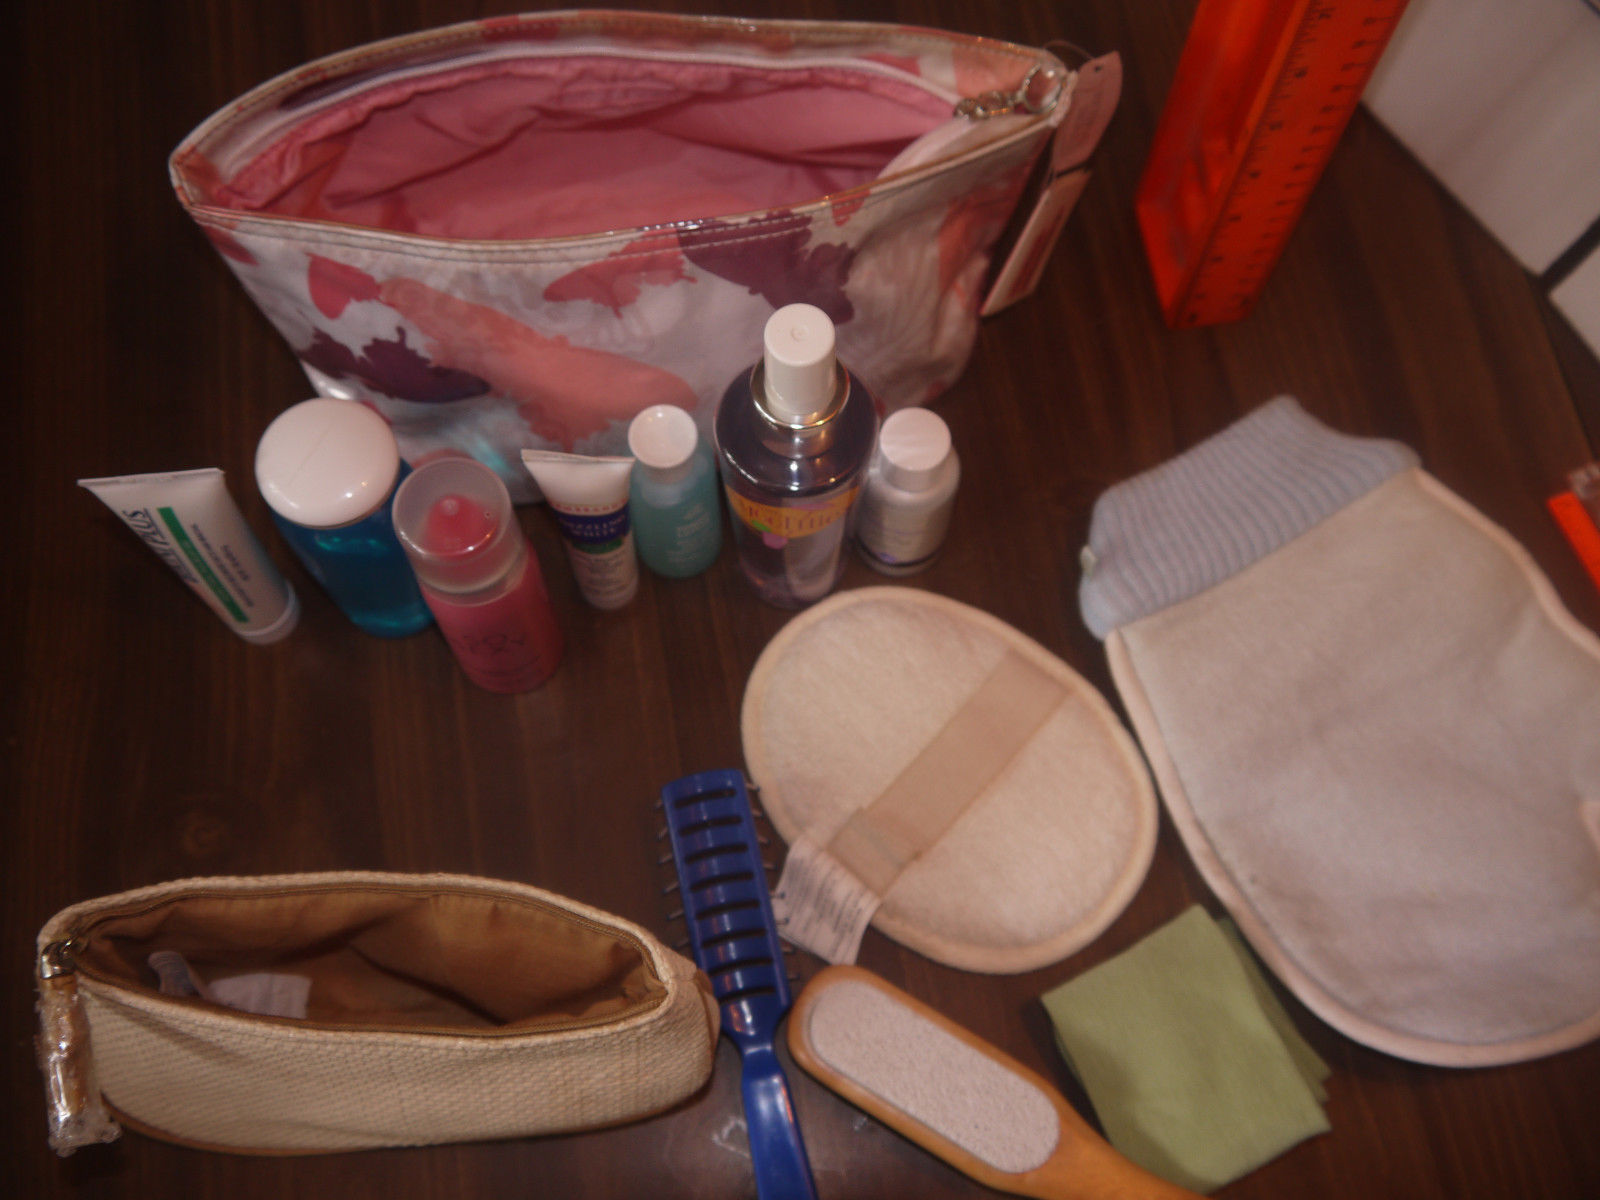 14 items New mixed Cosmetics lot w/2 bags & bath, personal sexy various products